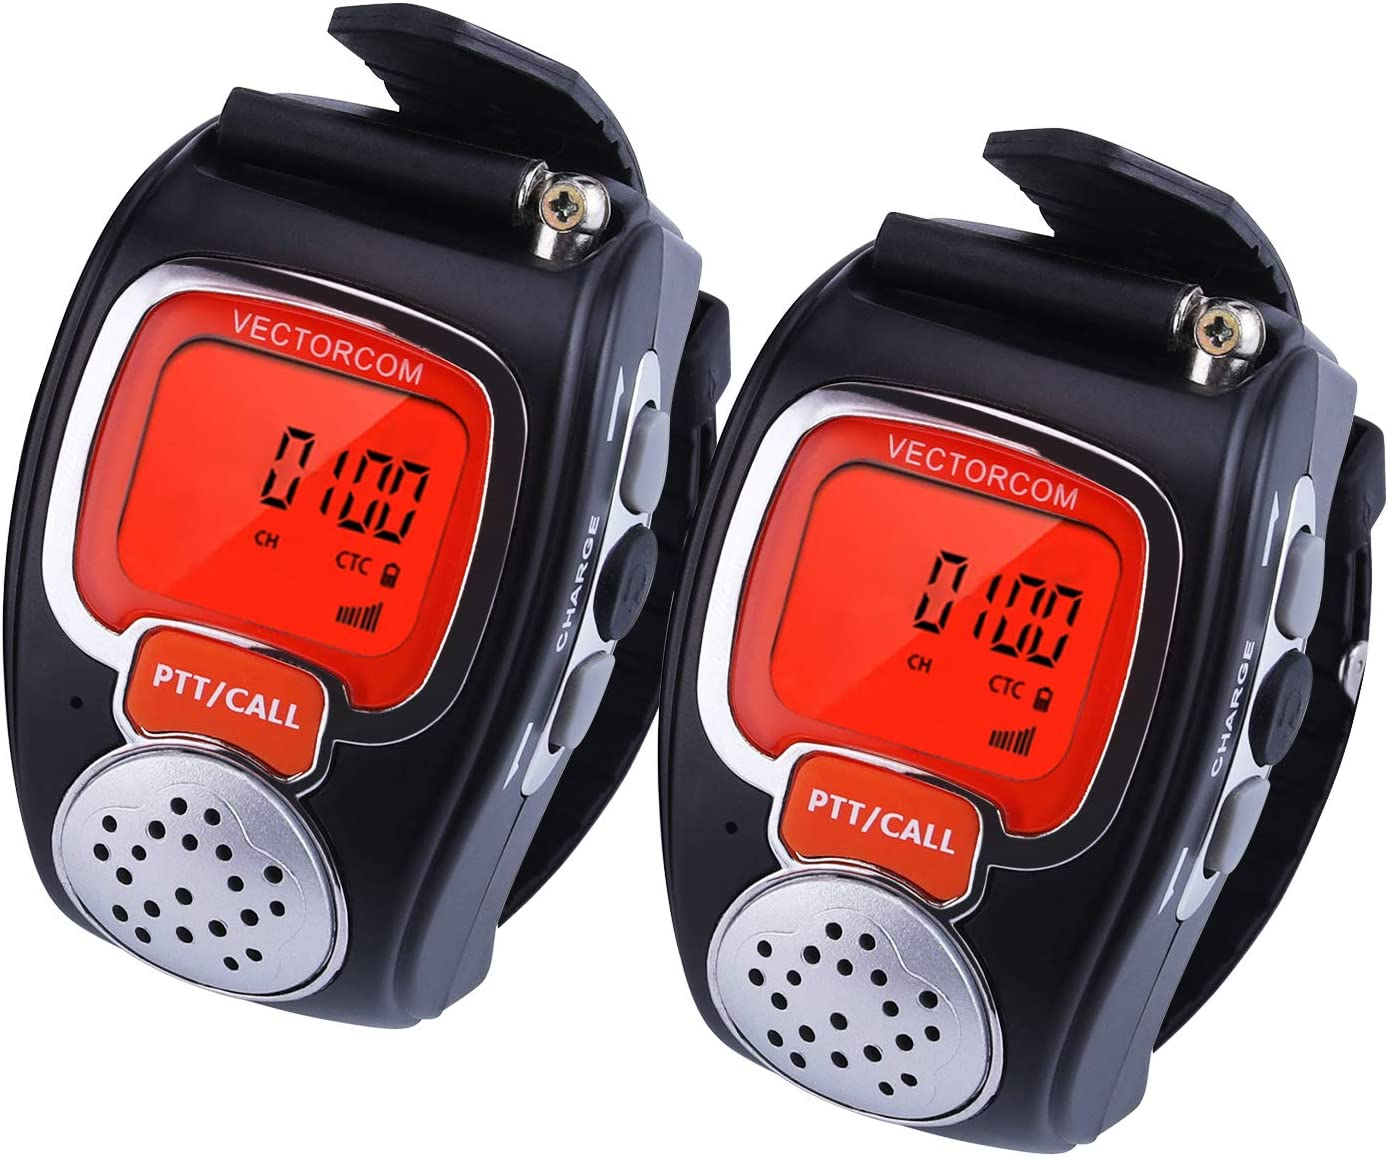 VECTORCOM Portable Digital Wrist Watch Walkie Talkie Two-Way Radio Outdoor Sport Hiking